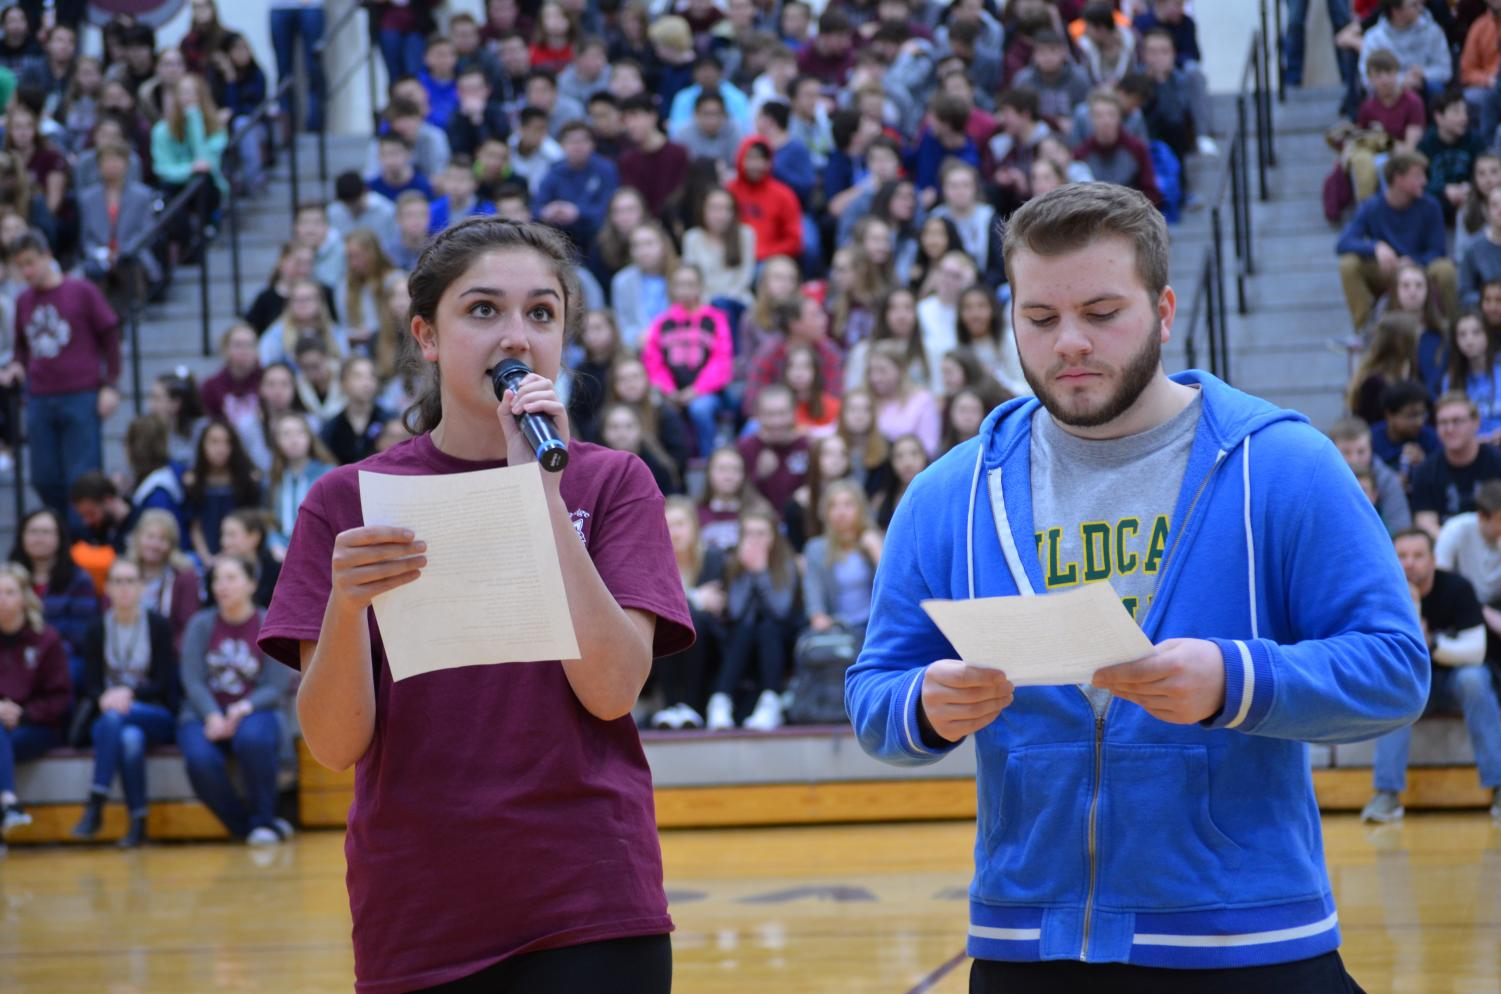 Melina Weil and Nick Falco emcee the spring honors assembly organized by Student Council on Friday, April 6.